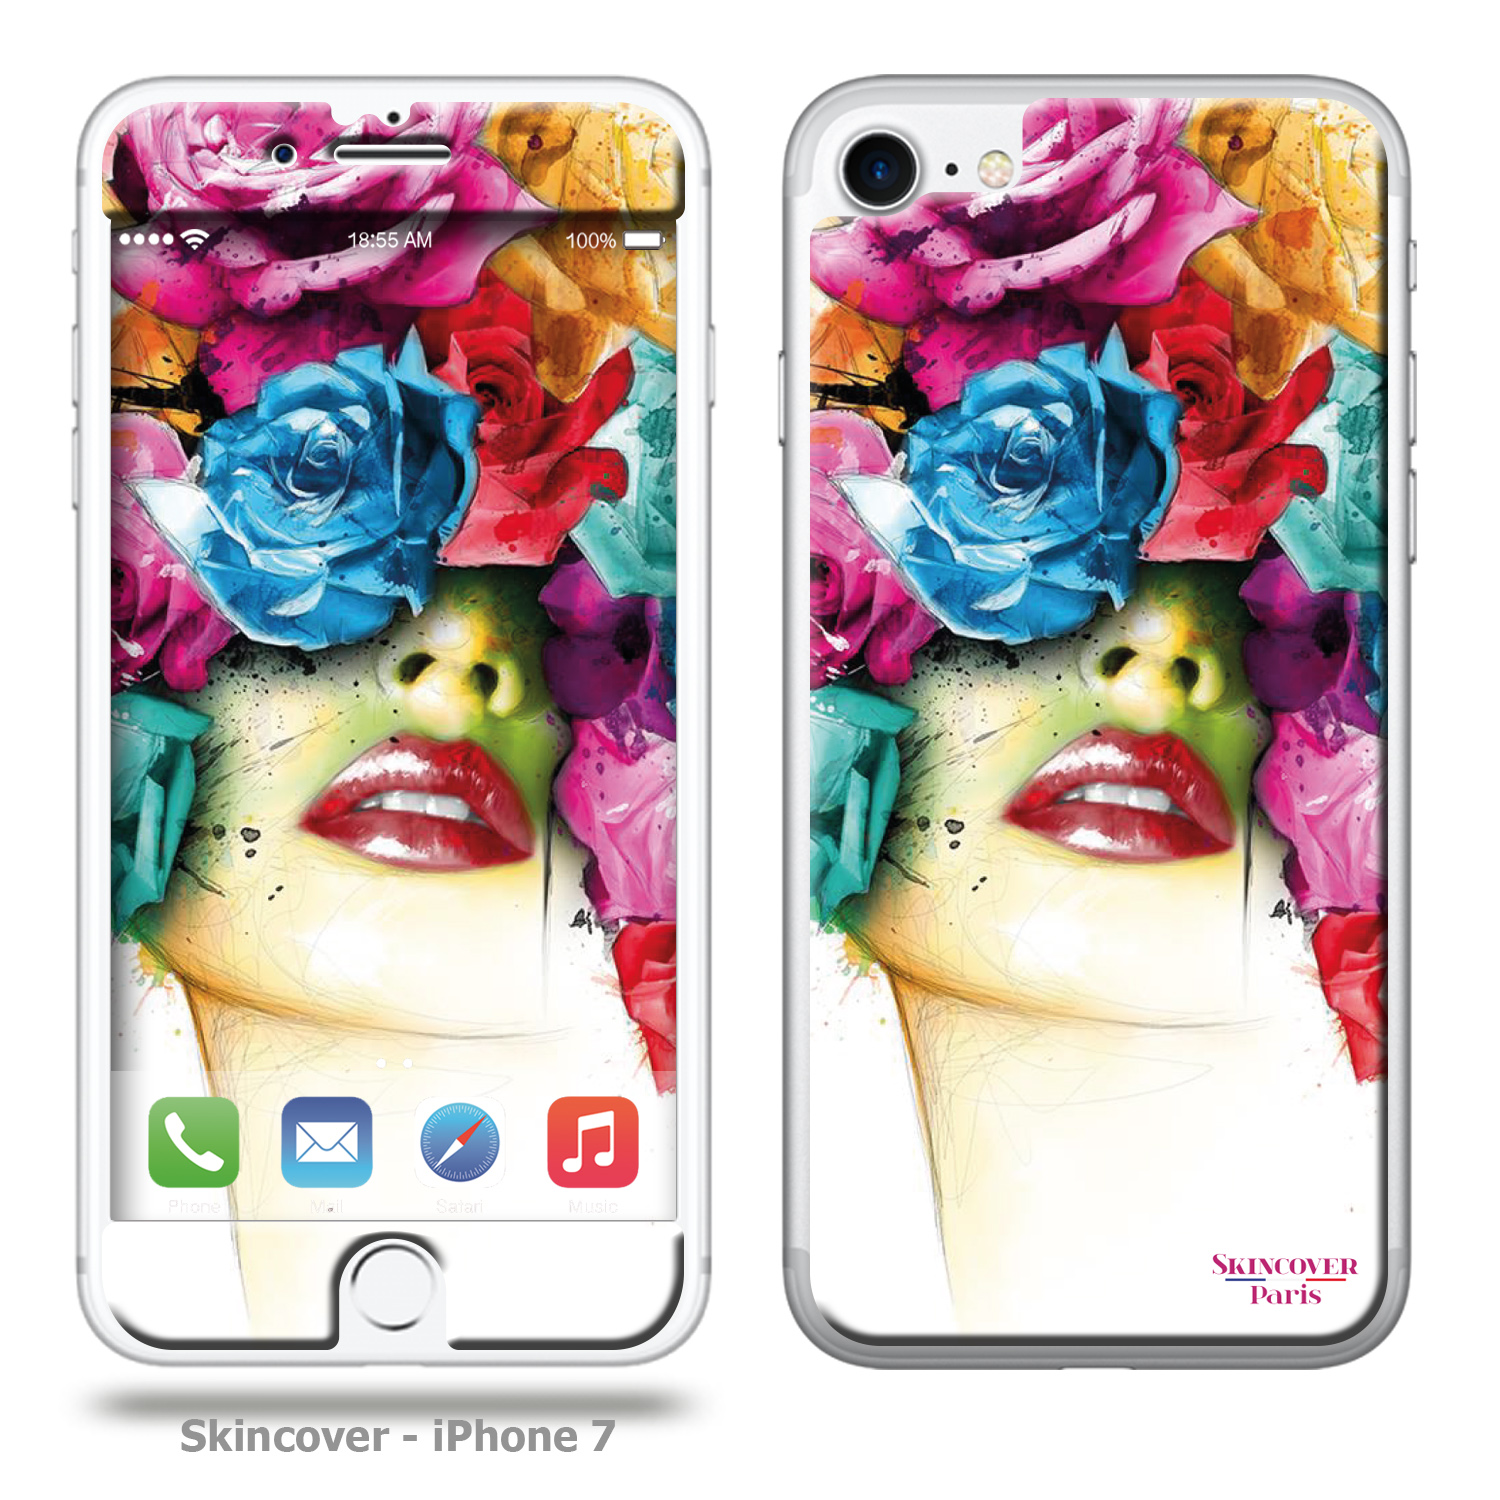 Skincover Rose Patrice Murciano  Iphone 7 Murciano